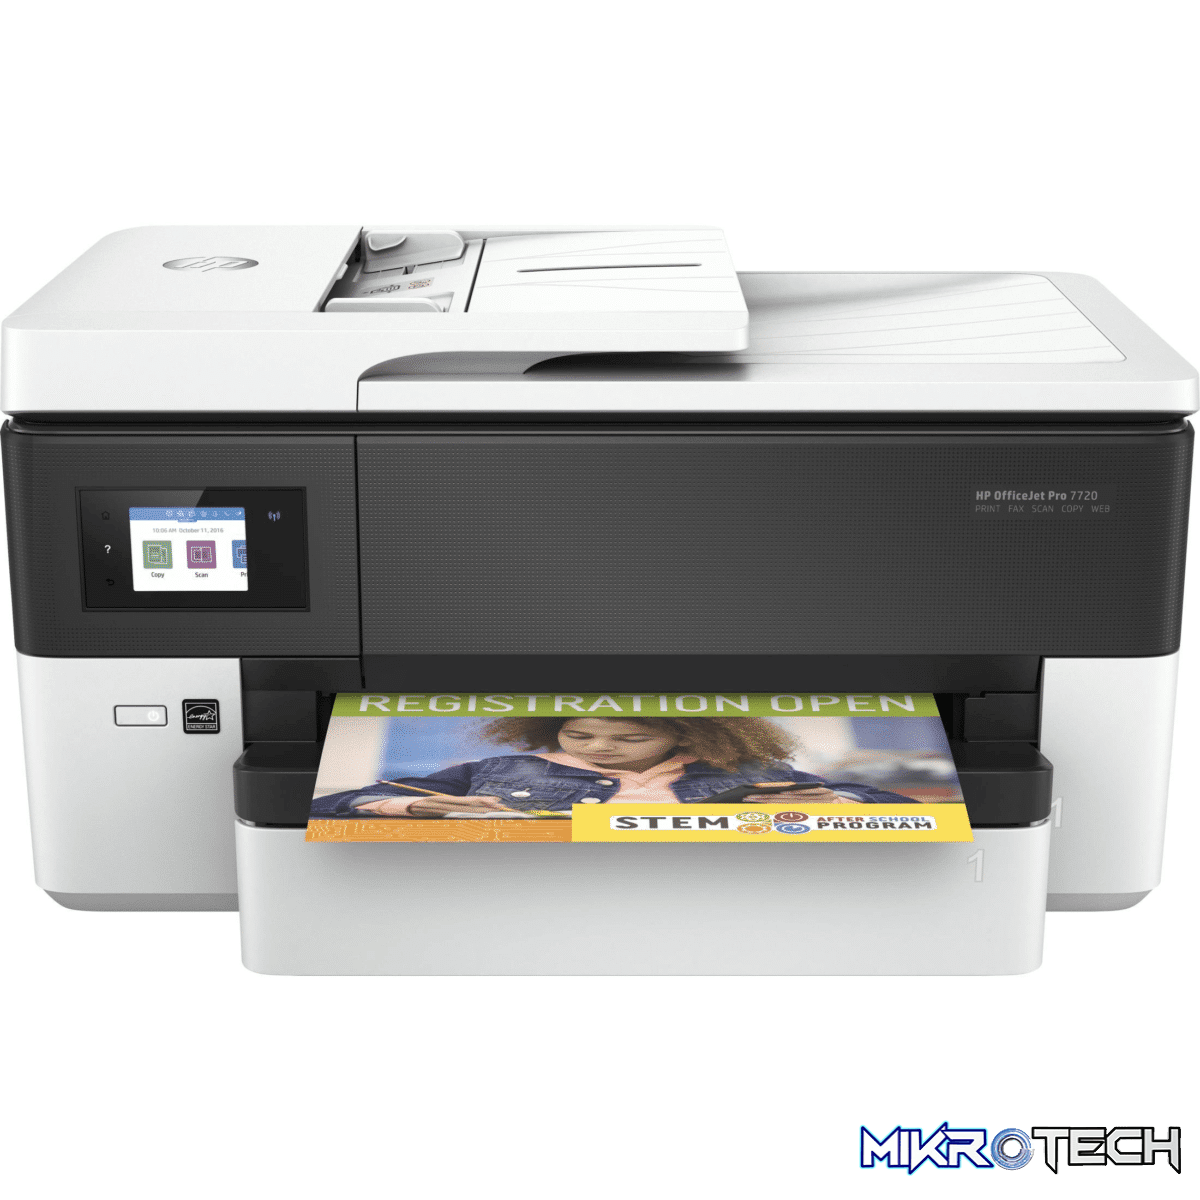 HP OfficeJet Pro 7720 A3 Multifunction Colour Inkjet Business Printer Y0S18A